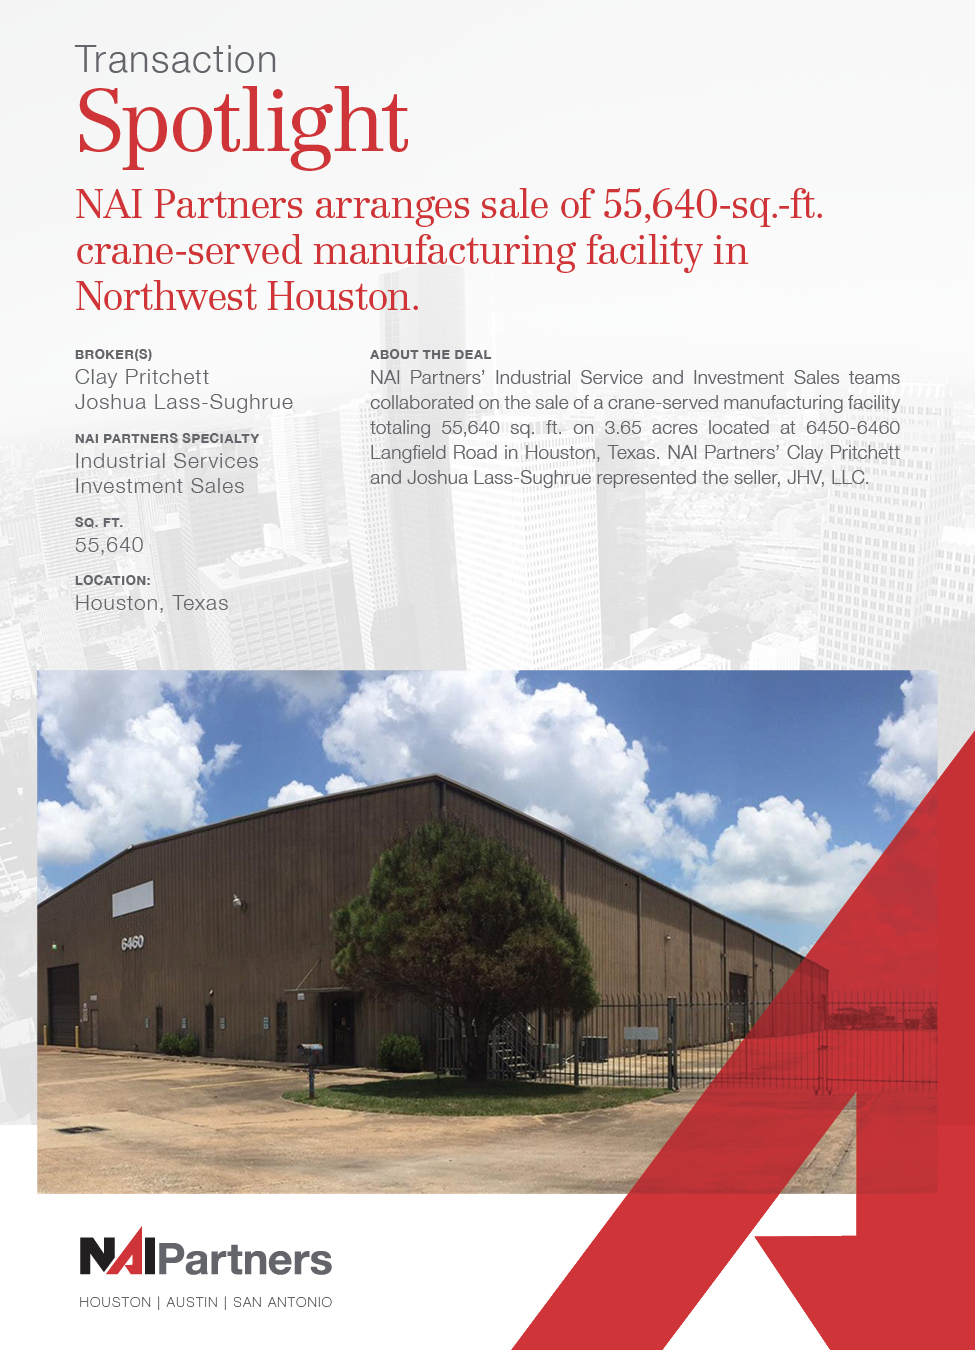 Houston Commercial Real Estate | Transaction Spotlight Industrial Services, Investment Sales